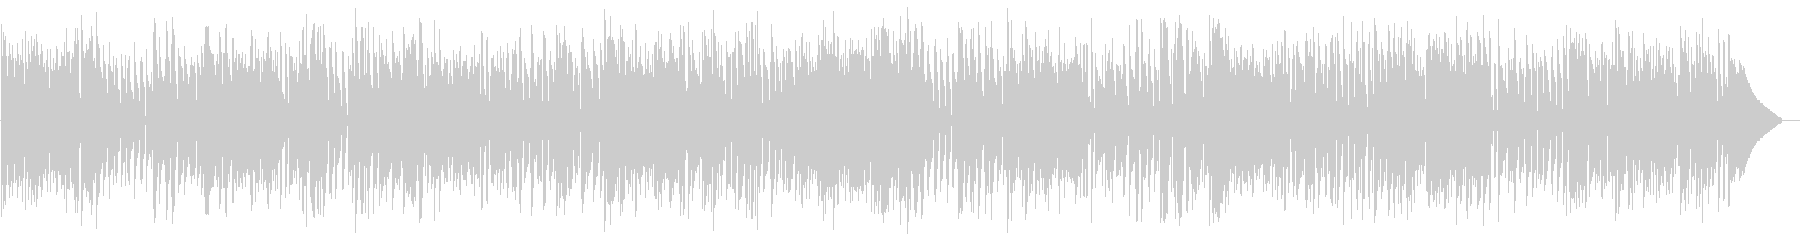 House of the Rising Sun Female Jazz's unreproduced waveform